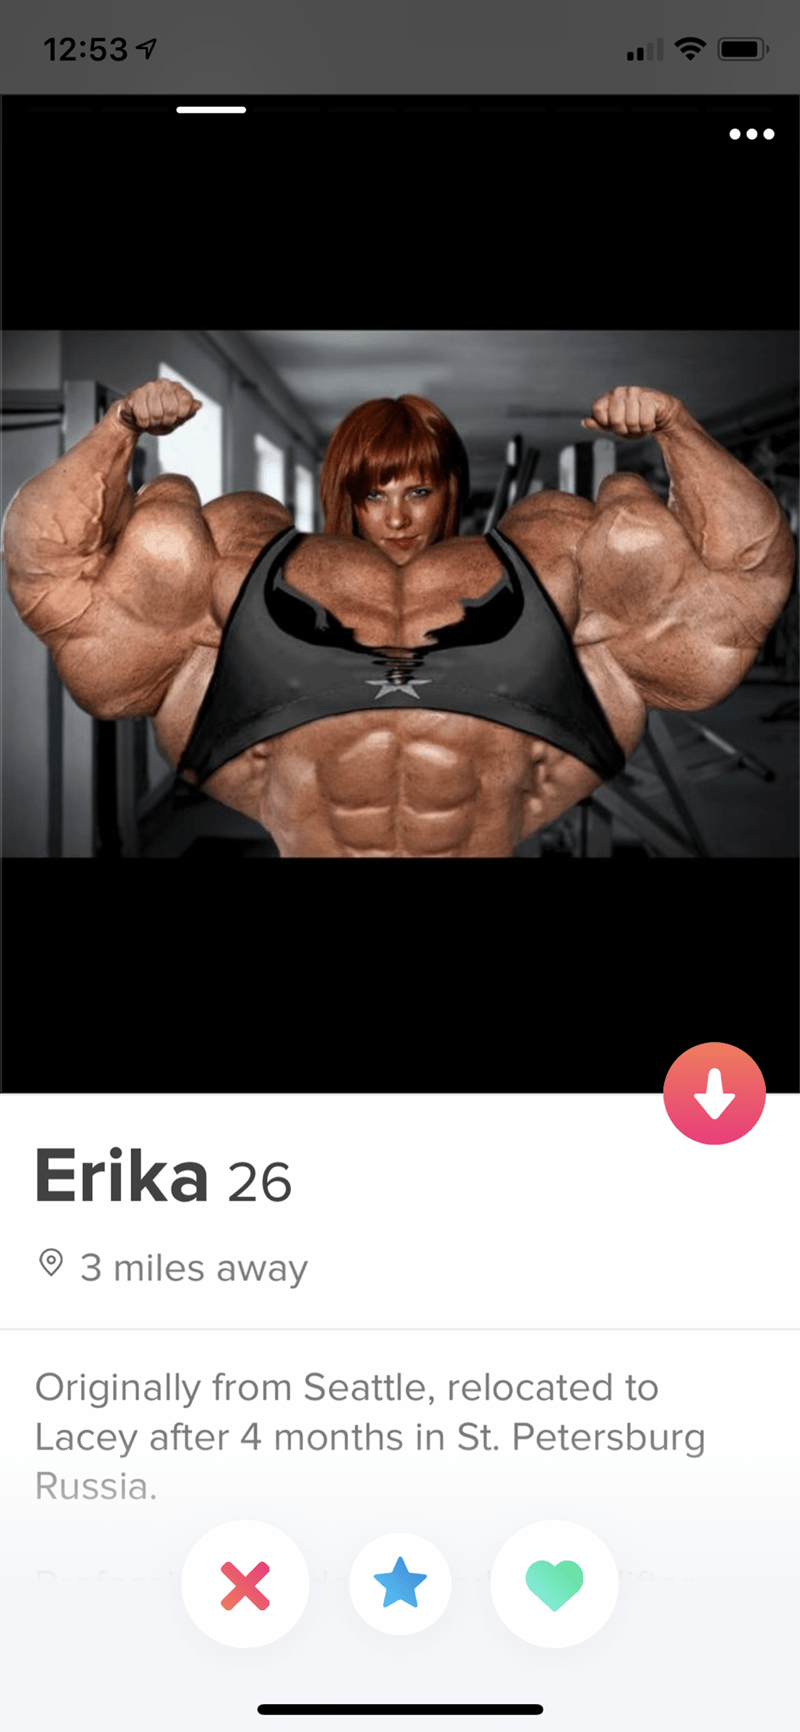 Bodybuilding - 12:53 Erika 26 3 miles away Originally from Seattle, relocated to Lacey after 4 months in St. Petersburg Russia.